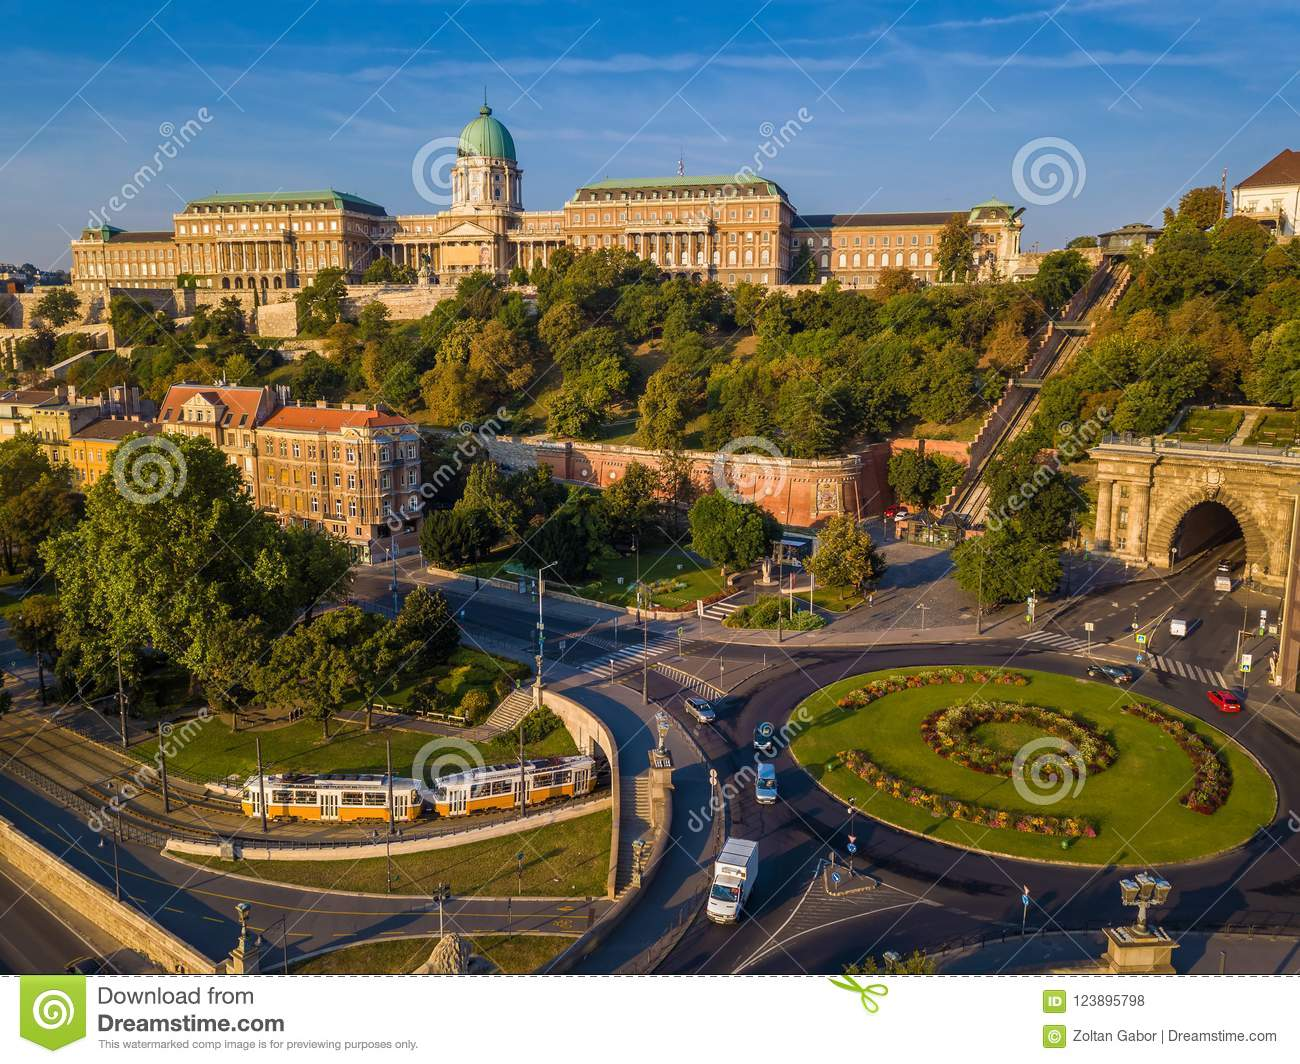 Budapest, Hungary - Clark Adam square roundabout from above at sunrise with Buda Castle Royal Palace